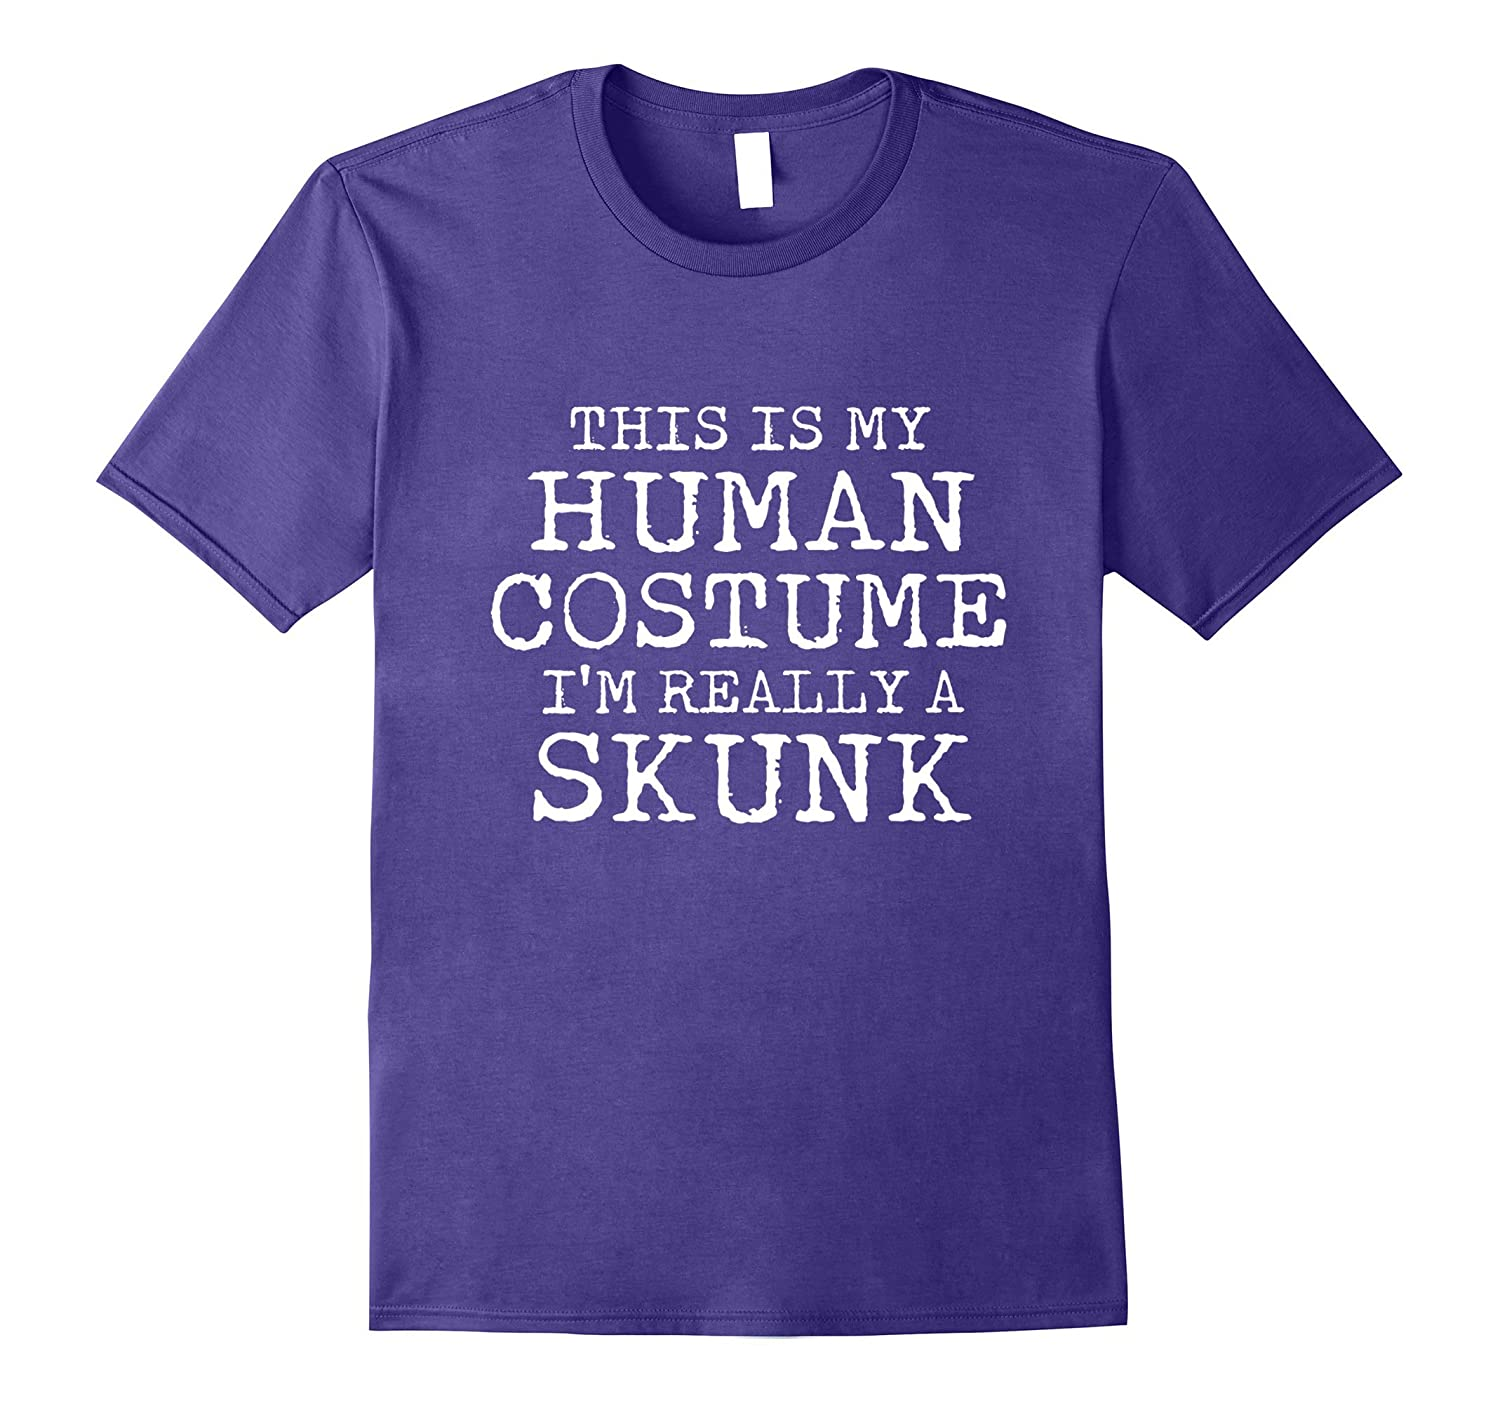 SKUNK Halloween Costume shirt Easy for Men Women-TJ